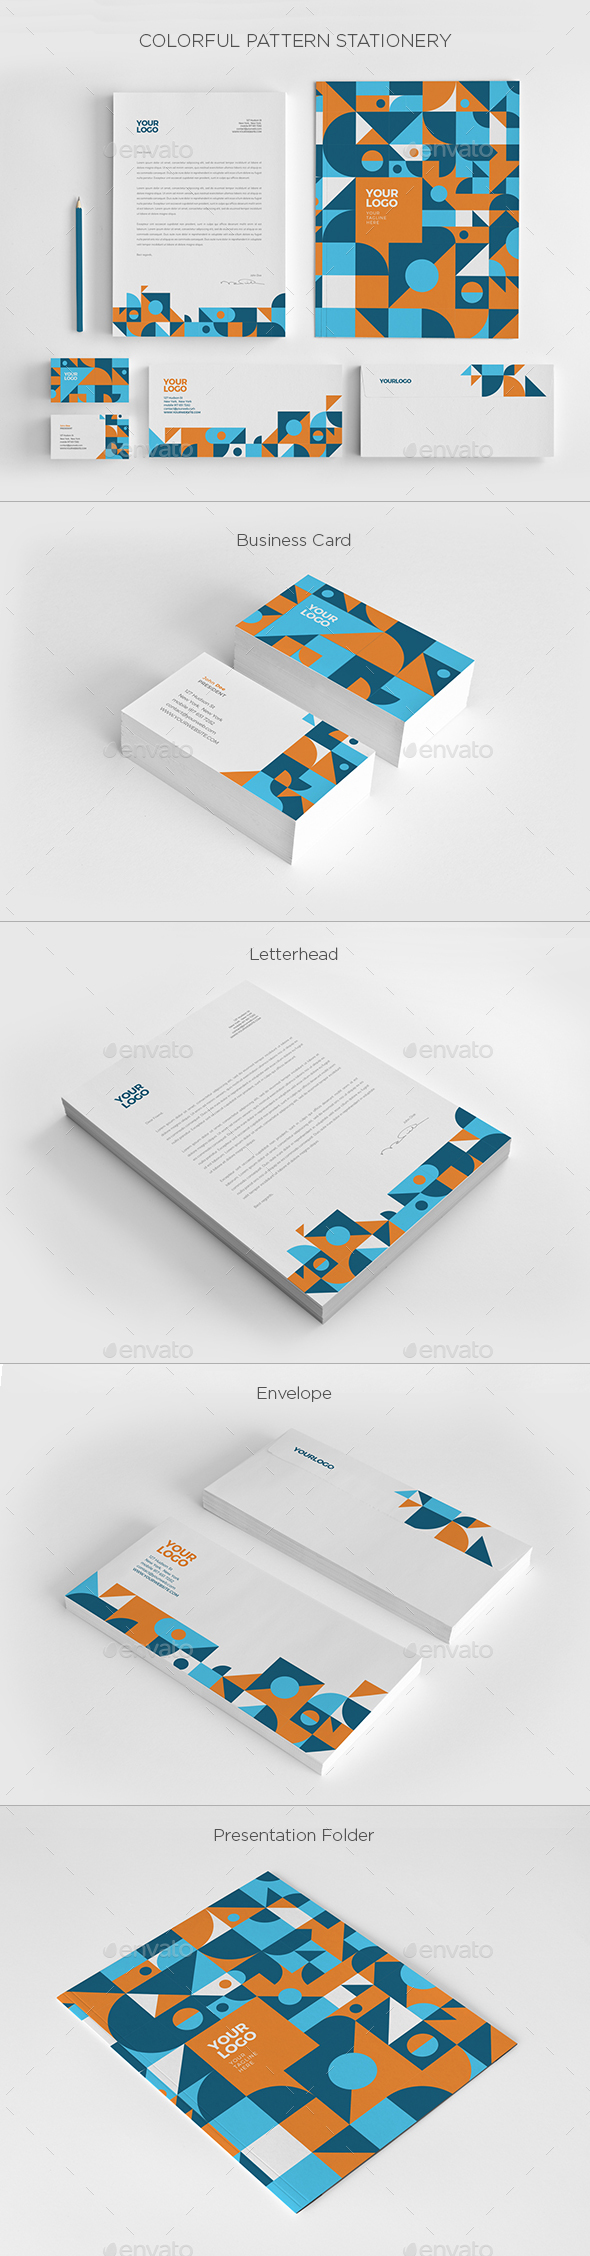 Colorful Pattern Stationery - Stationery Print Templates